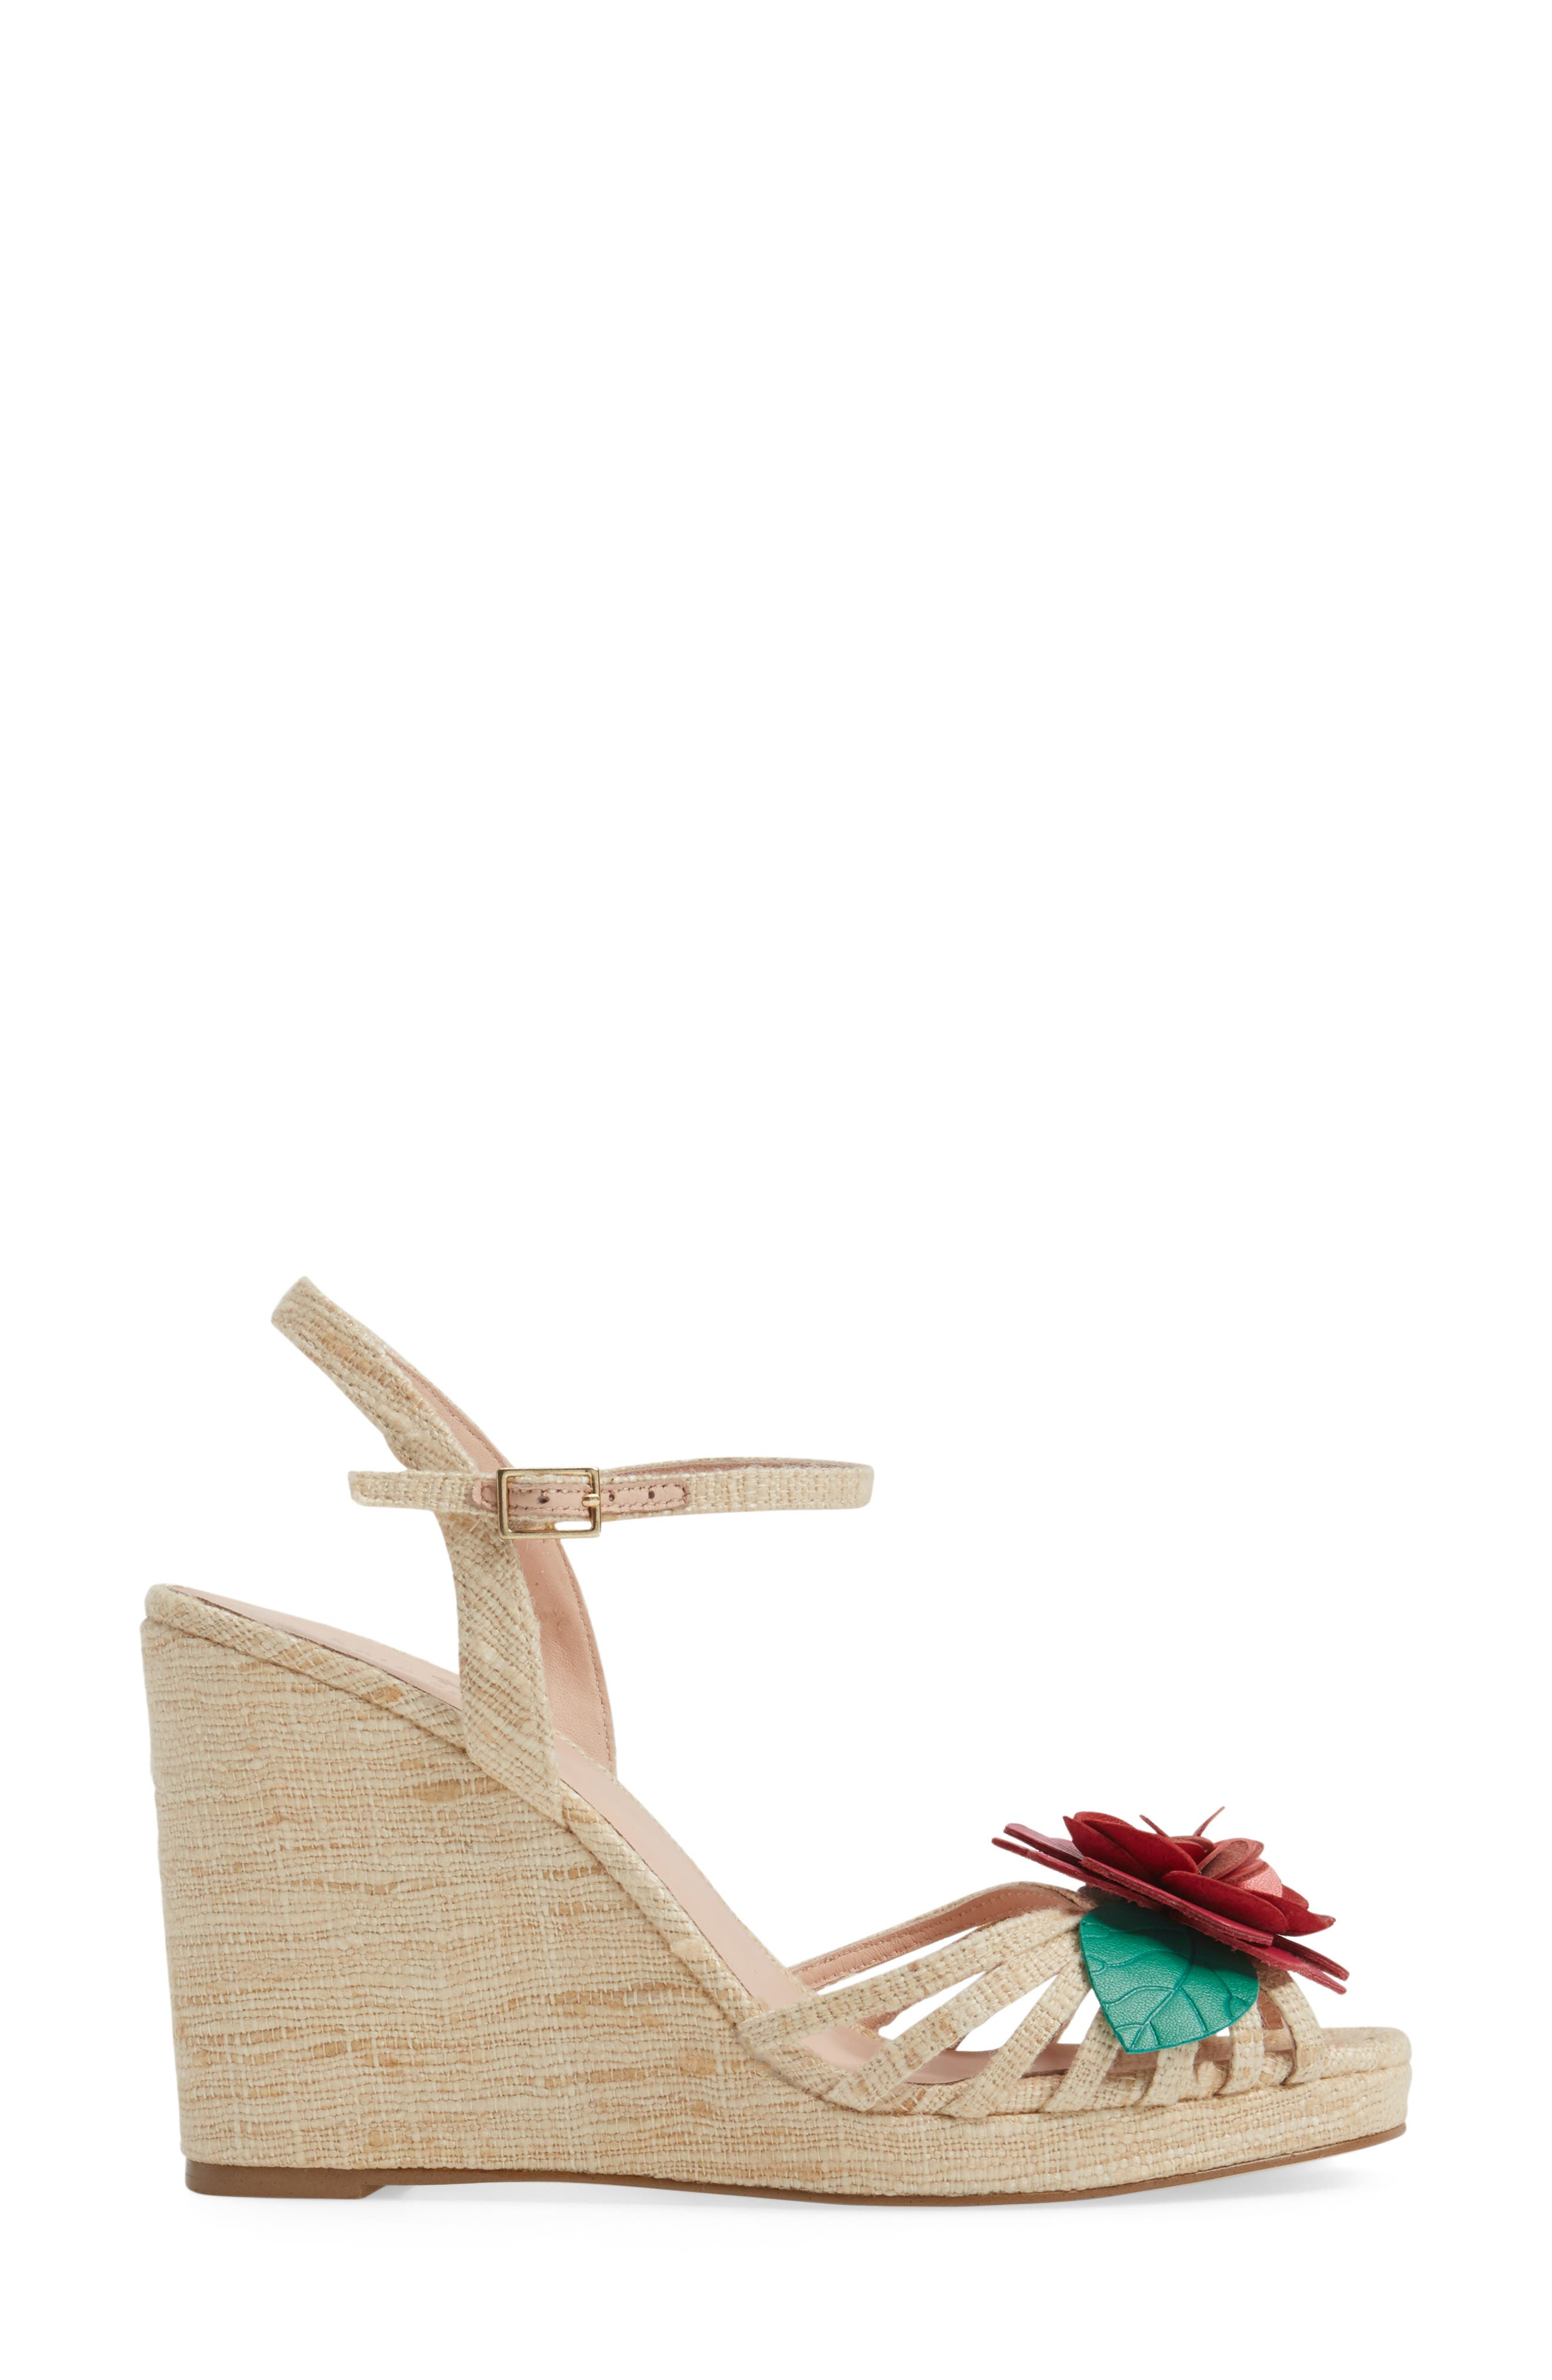 beekman strappy wedge sandal,                             Alternate thumbnail 3, color,                             Natural Raw Silk